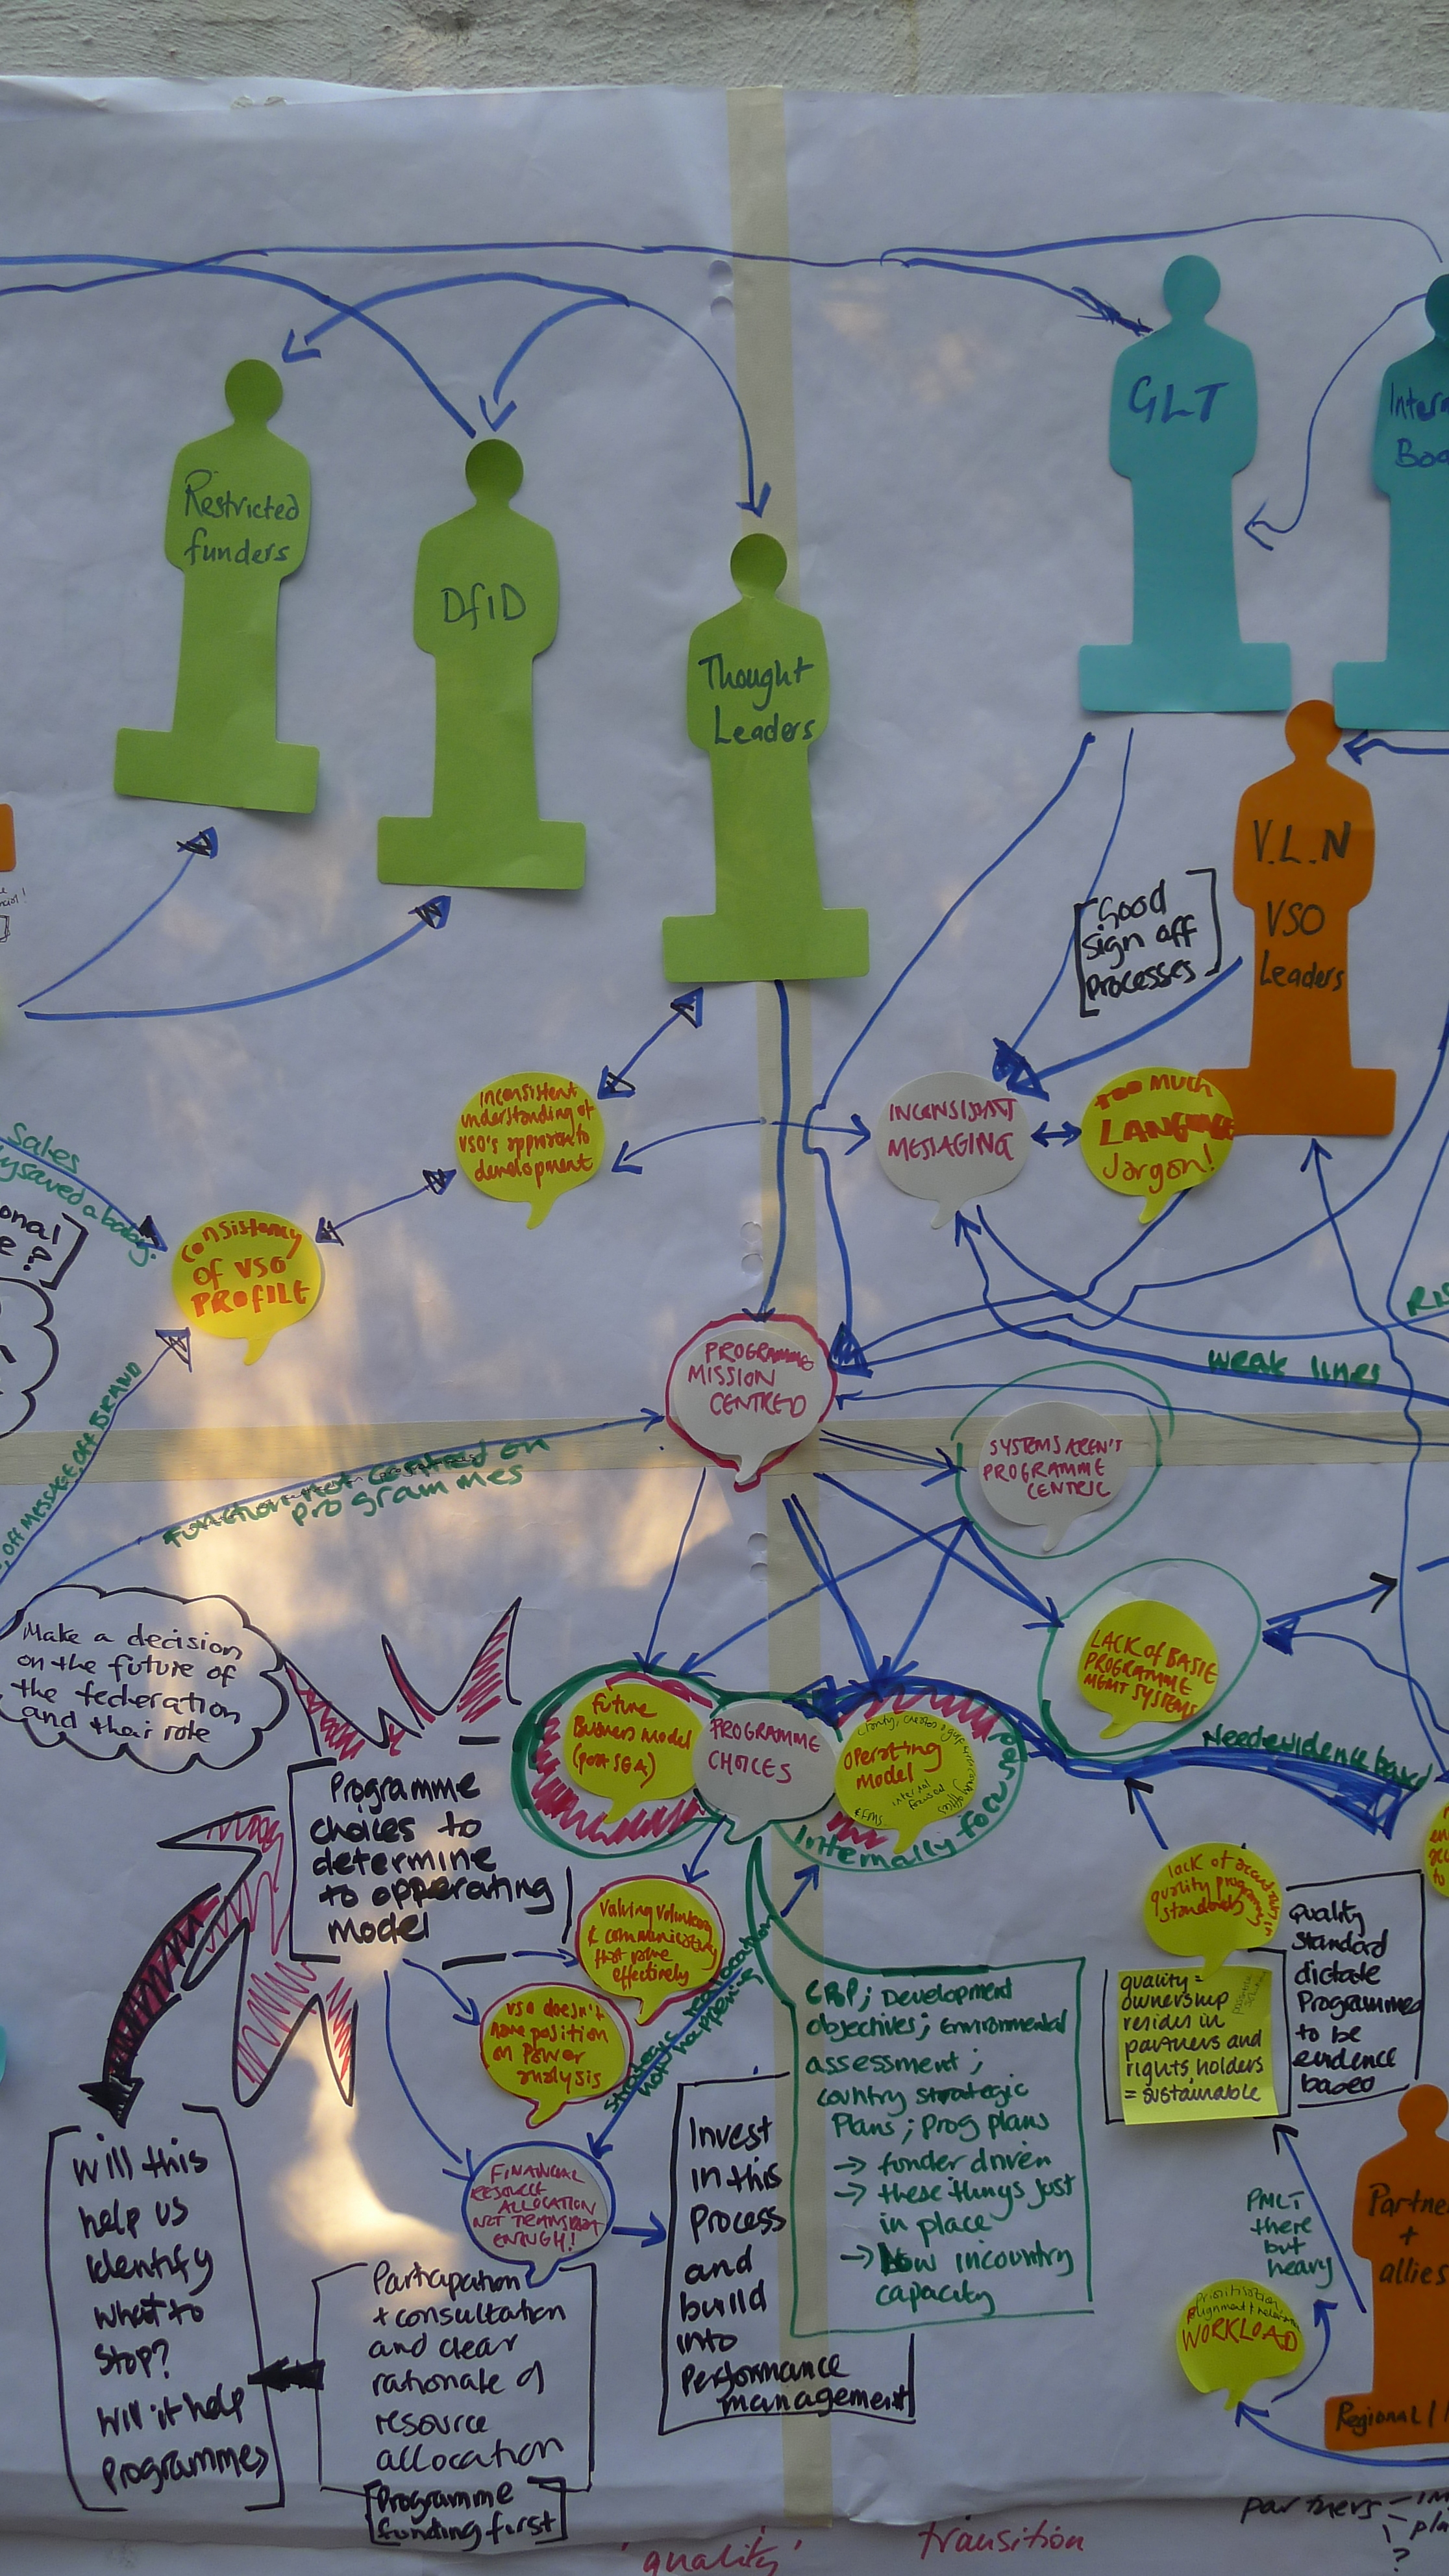 Copy of Systems mapping